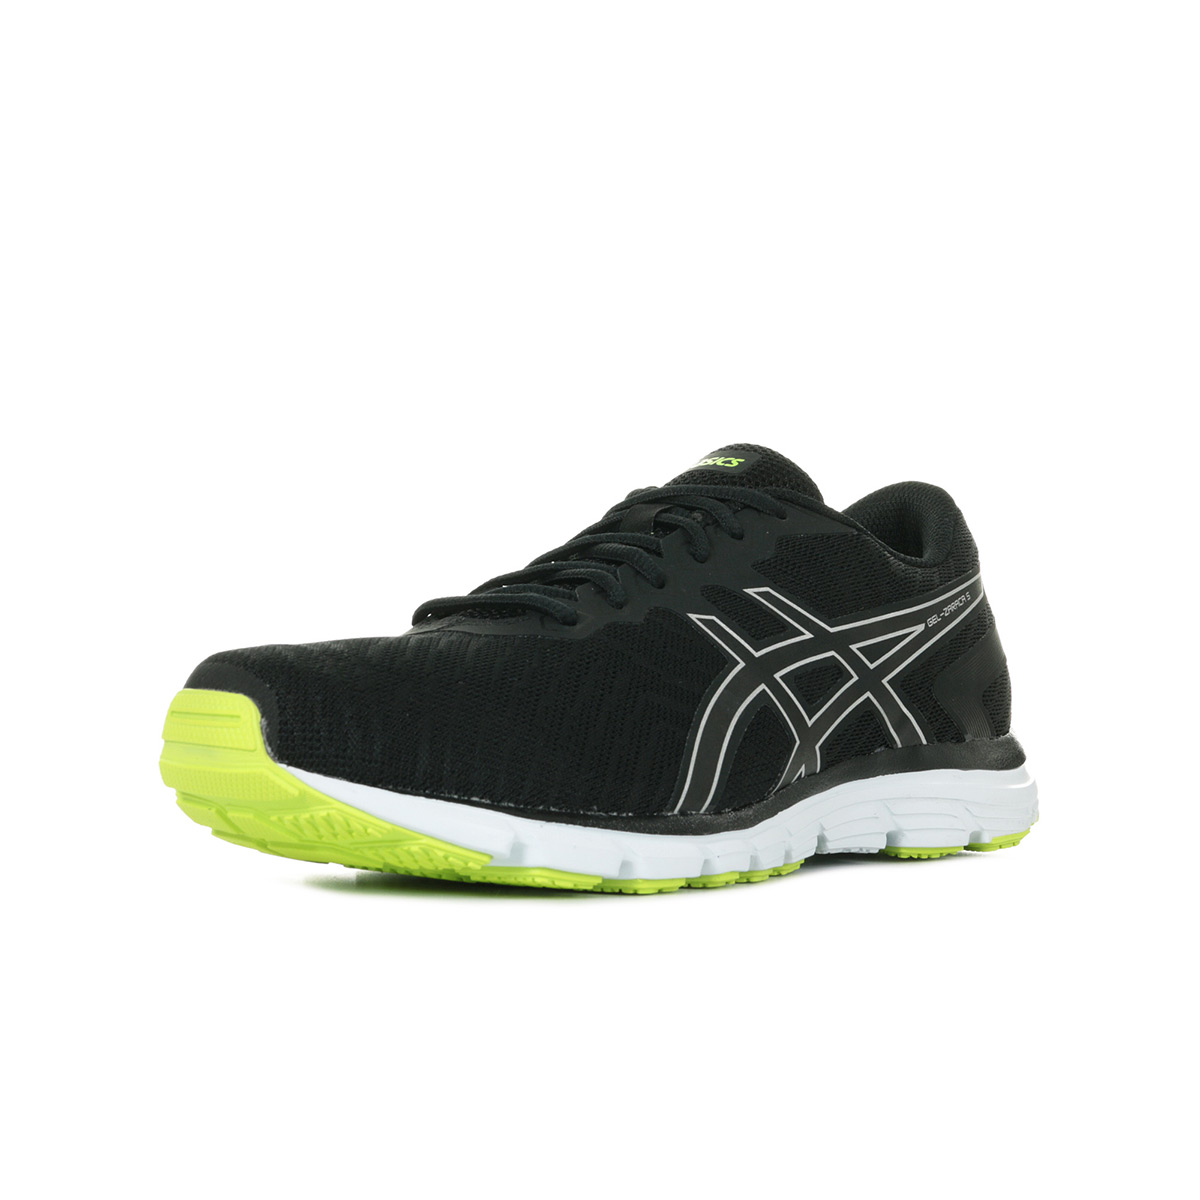 asics homme foulee universelle